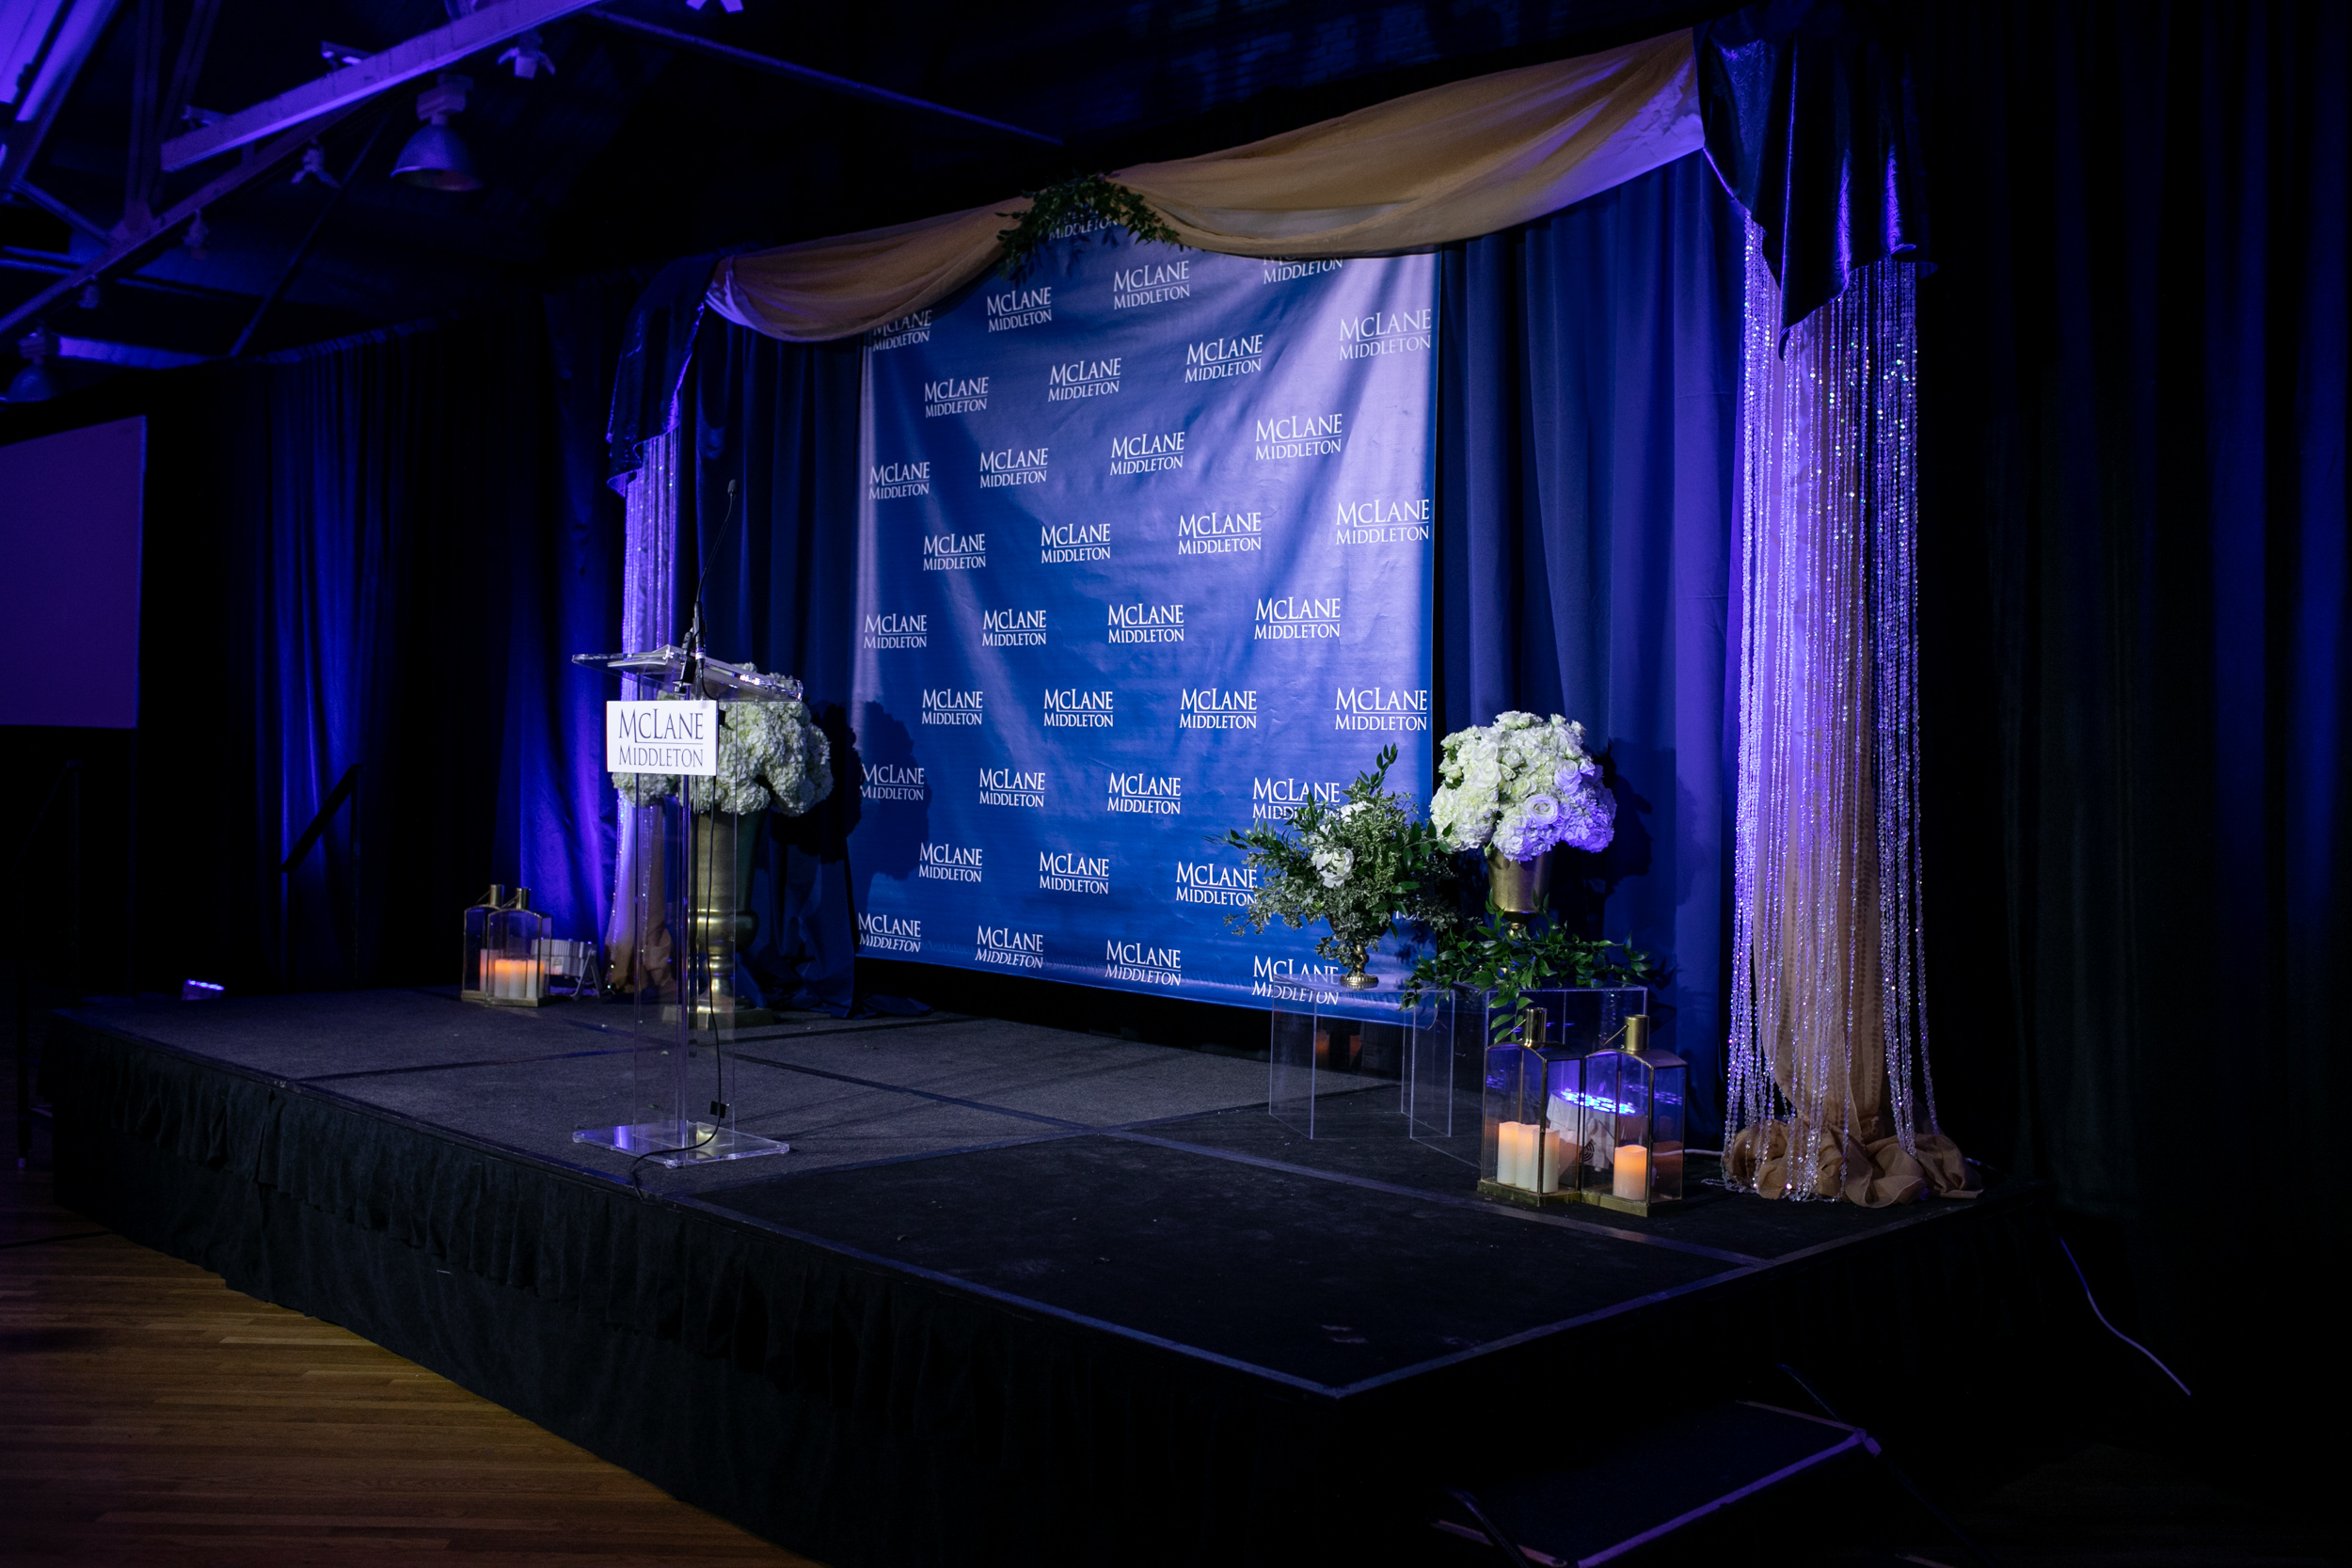 Malloy_Events_Pizzuti_McLane_Middleton_Centennial_Celebration_Manchester_NH_Corporate_Production_stage_drape